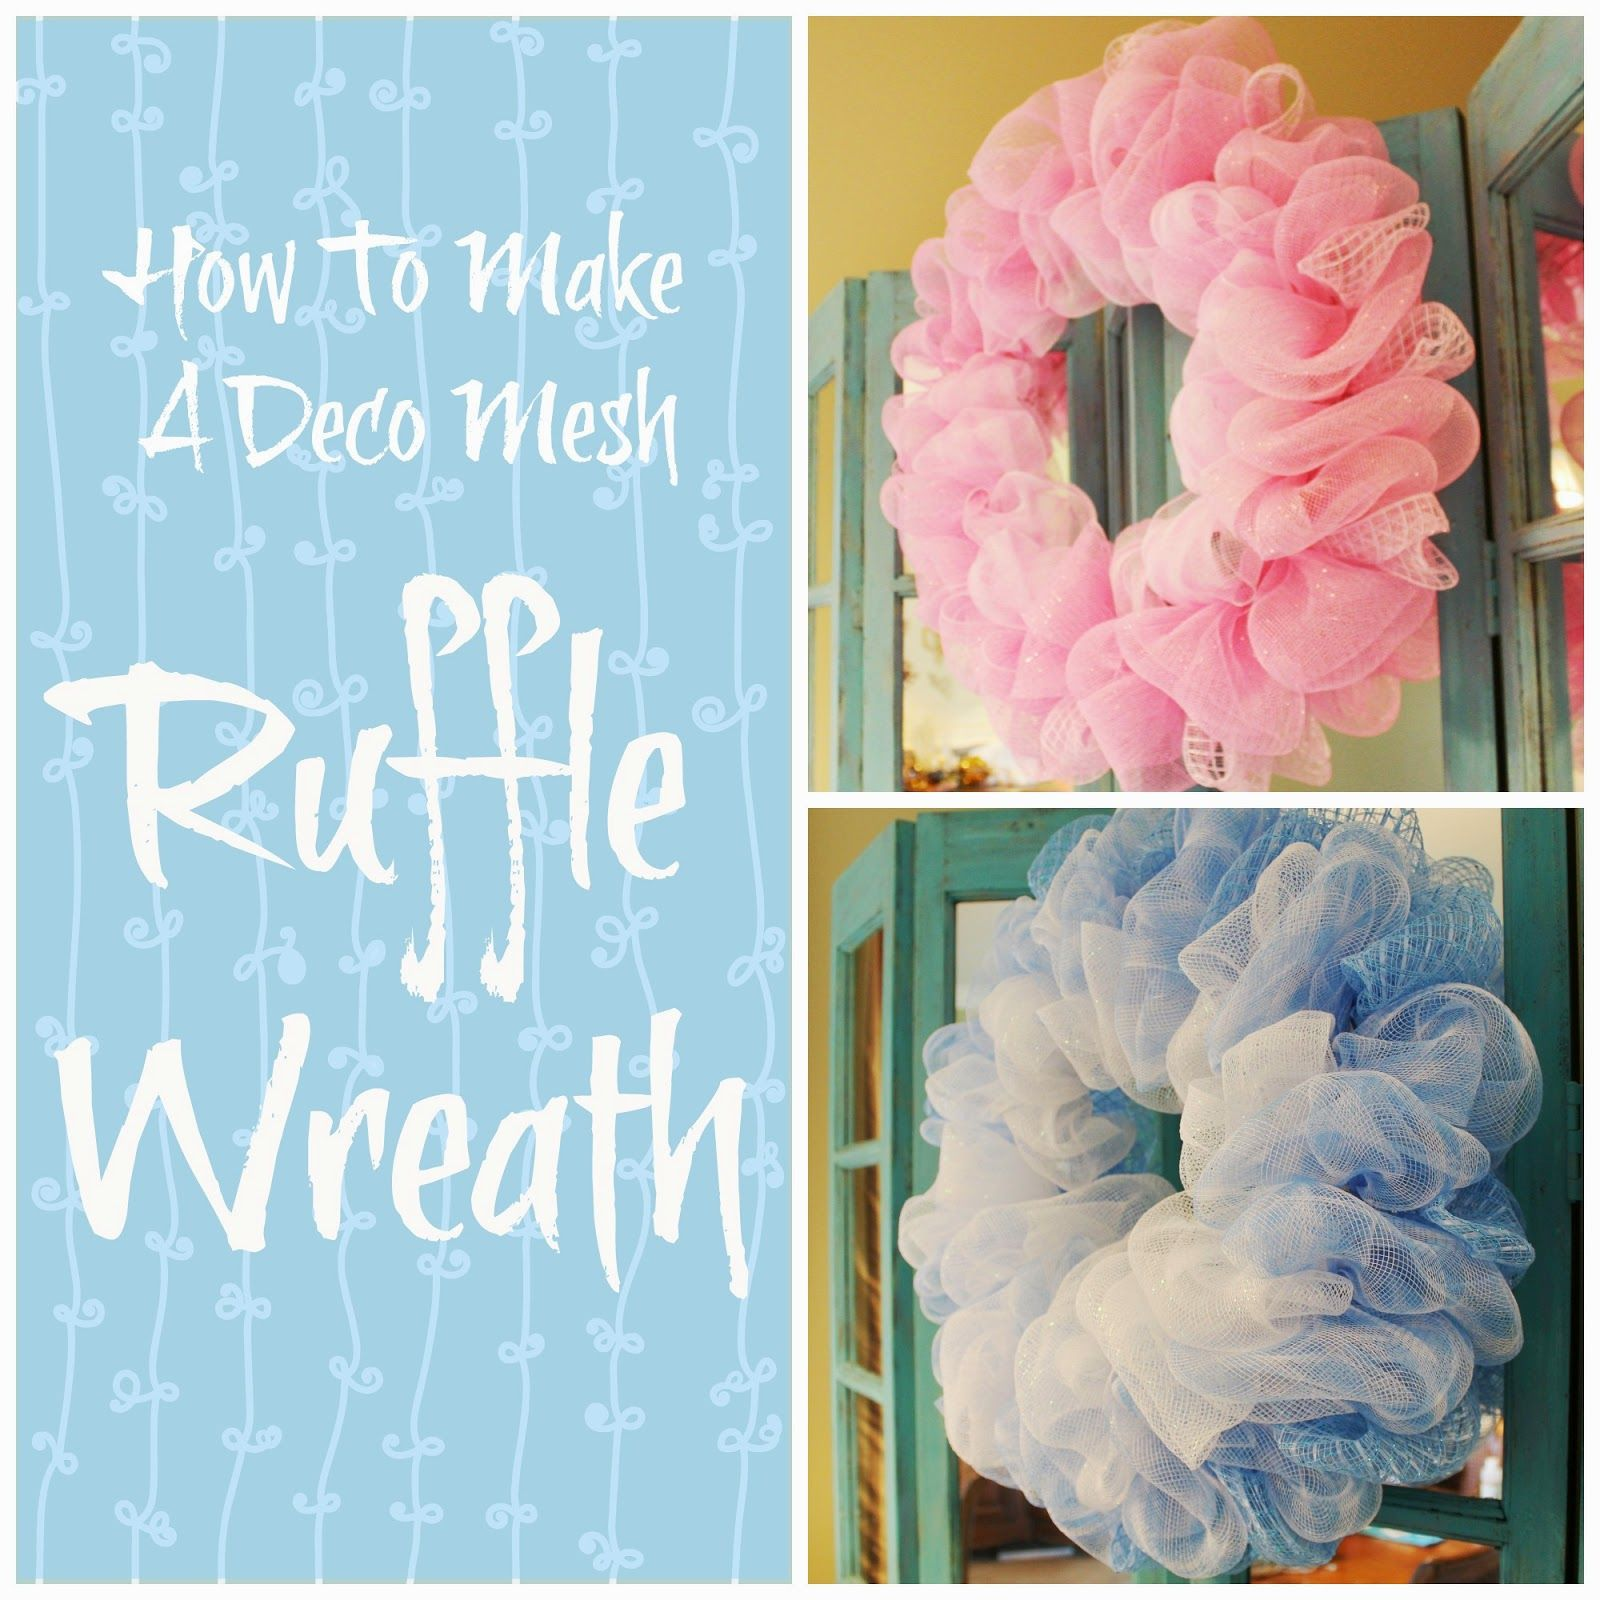 How To Make A Deco Mesh Ruffle Wreath